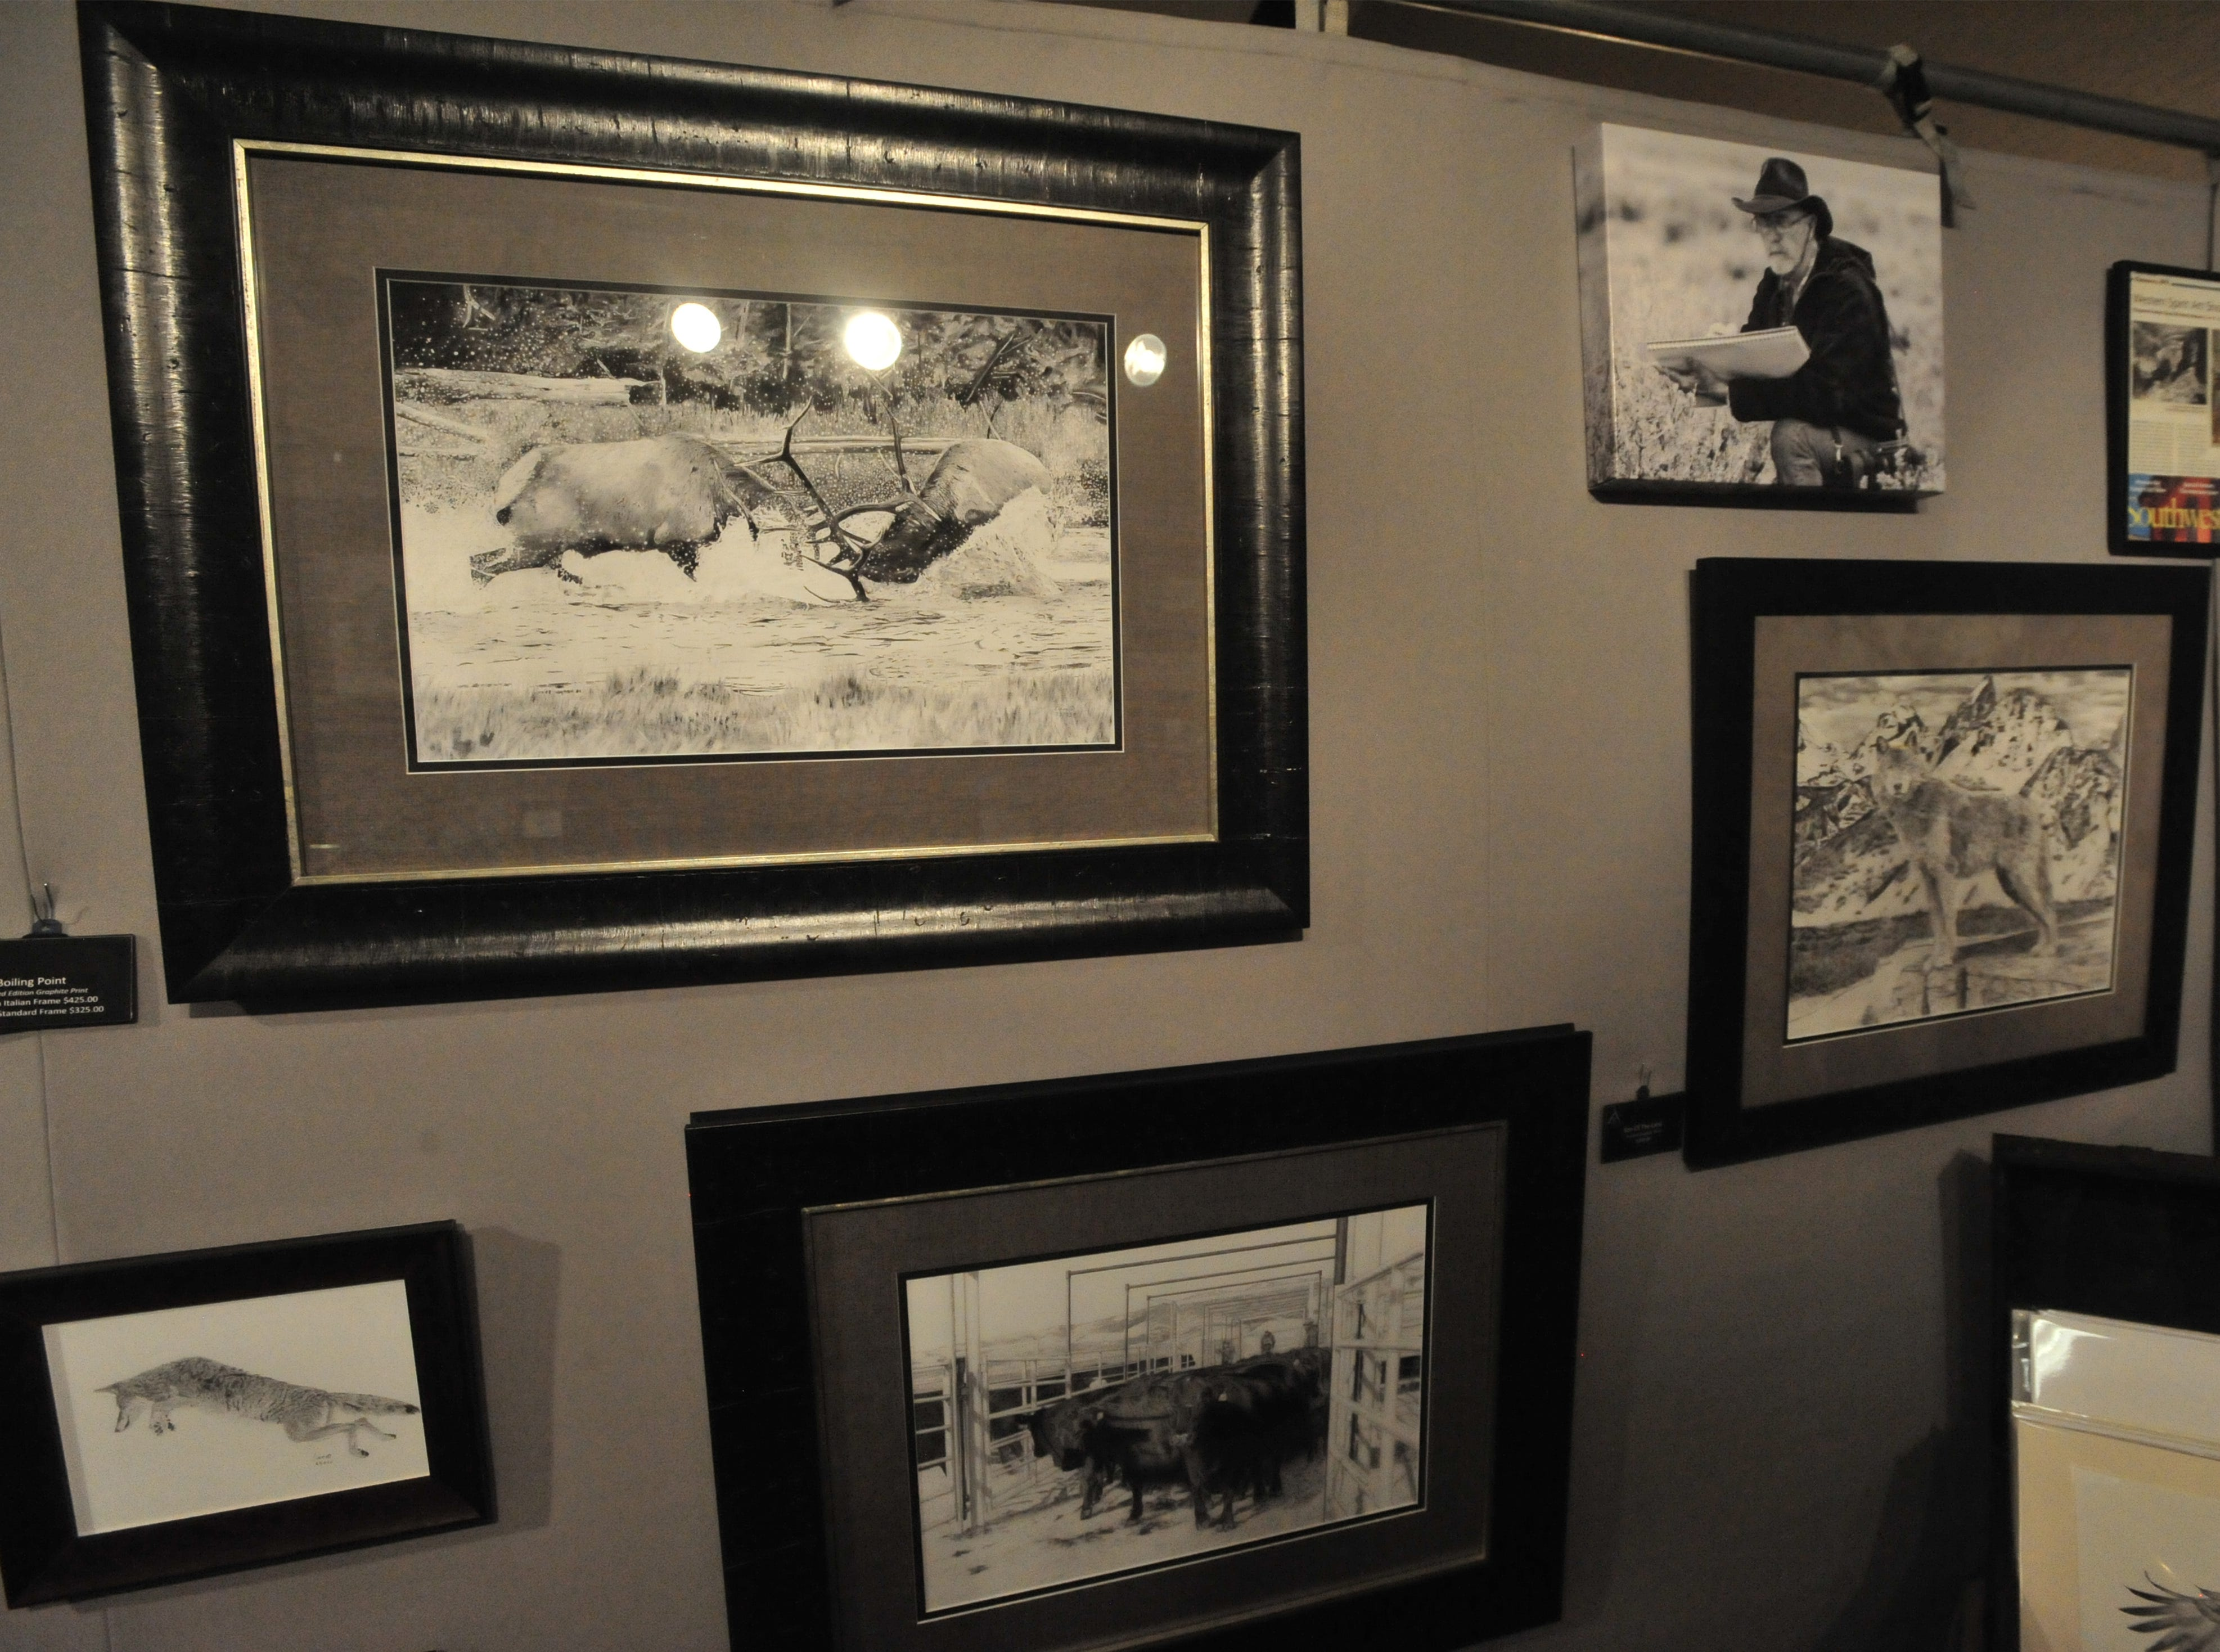 Lynn Cain pencil drawings on display at the Wild Bunch Art Show in the Hampton Inn.